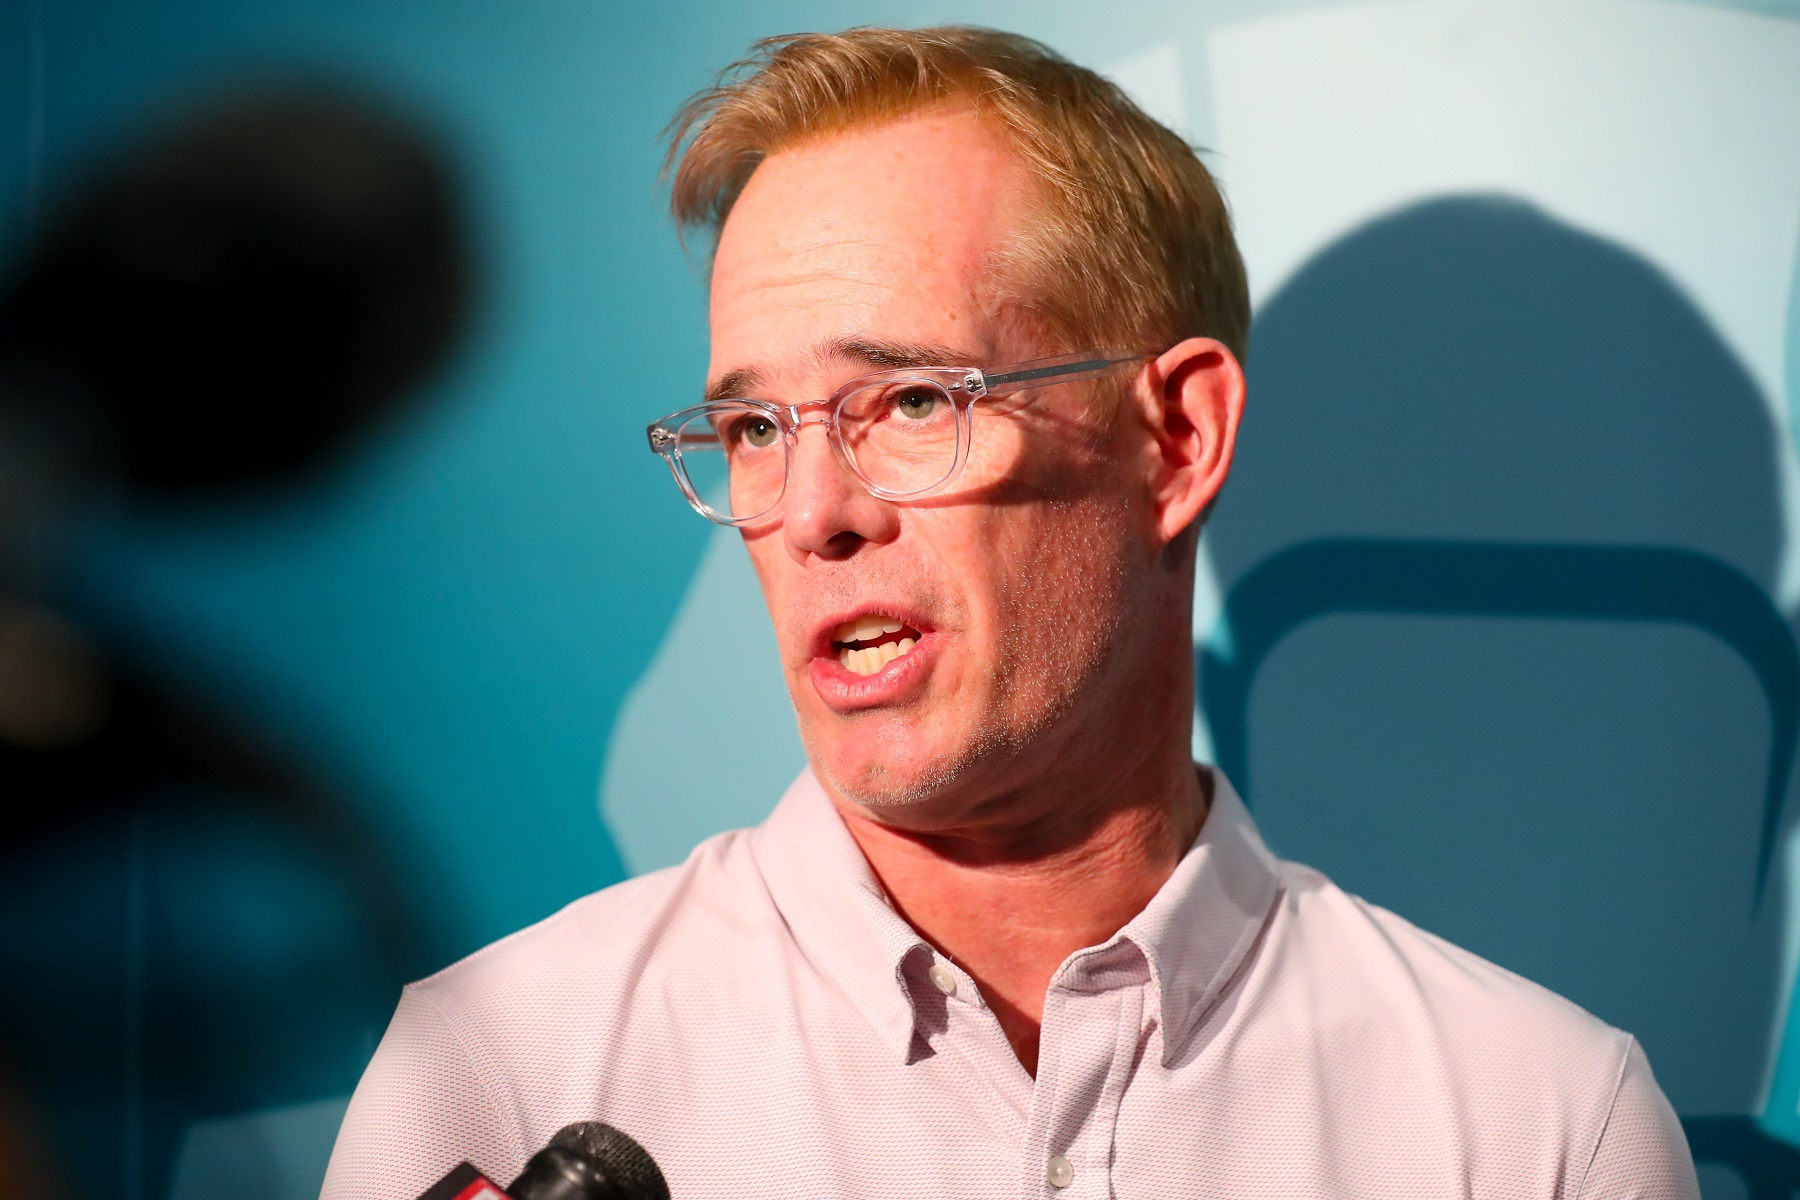 Fox's Joe Buck Takes Aim and Fires Cheap Shot at Raiders Defense in Latest Inflammatory Remarks